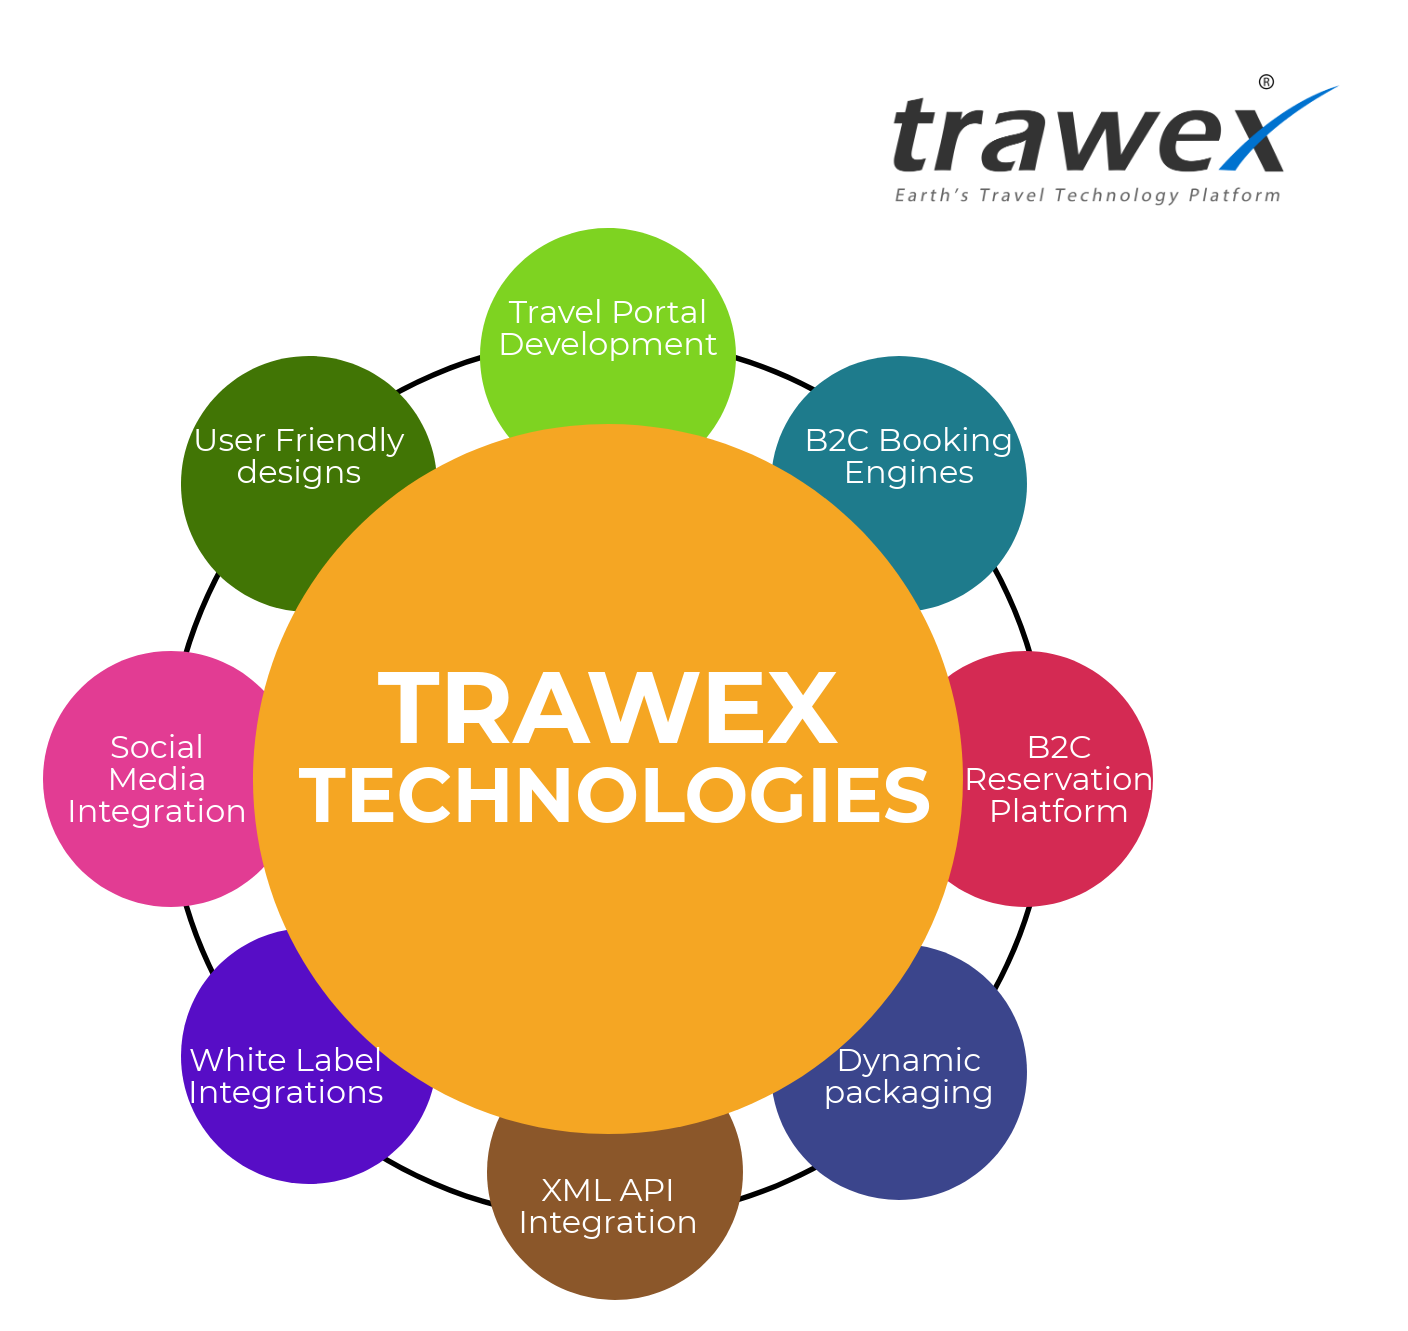 Trawex Provides Travel Xml Api Integration For Travel Companies